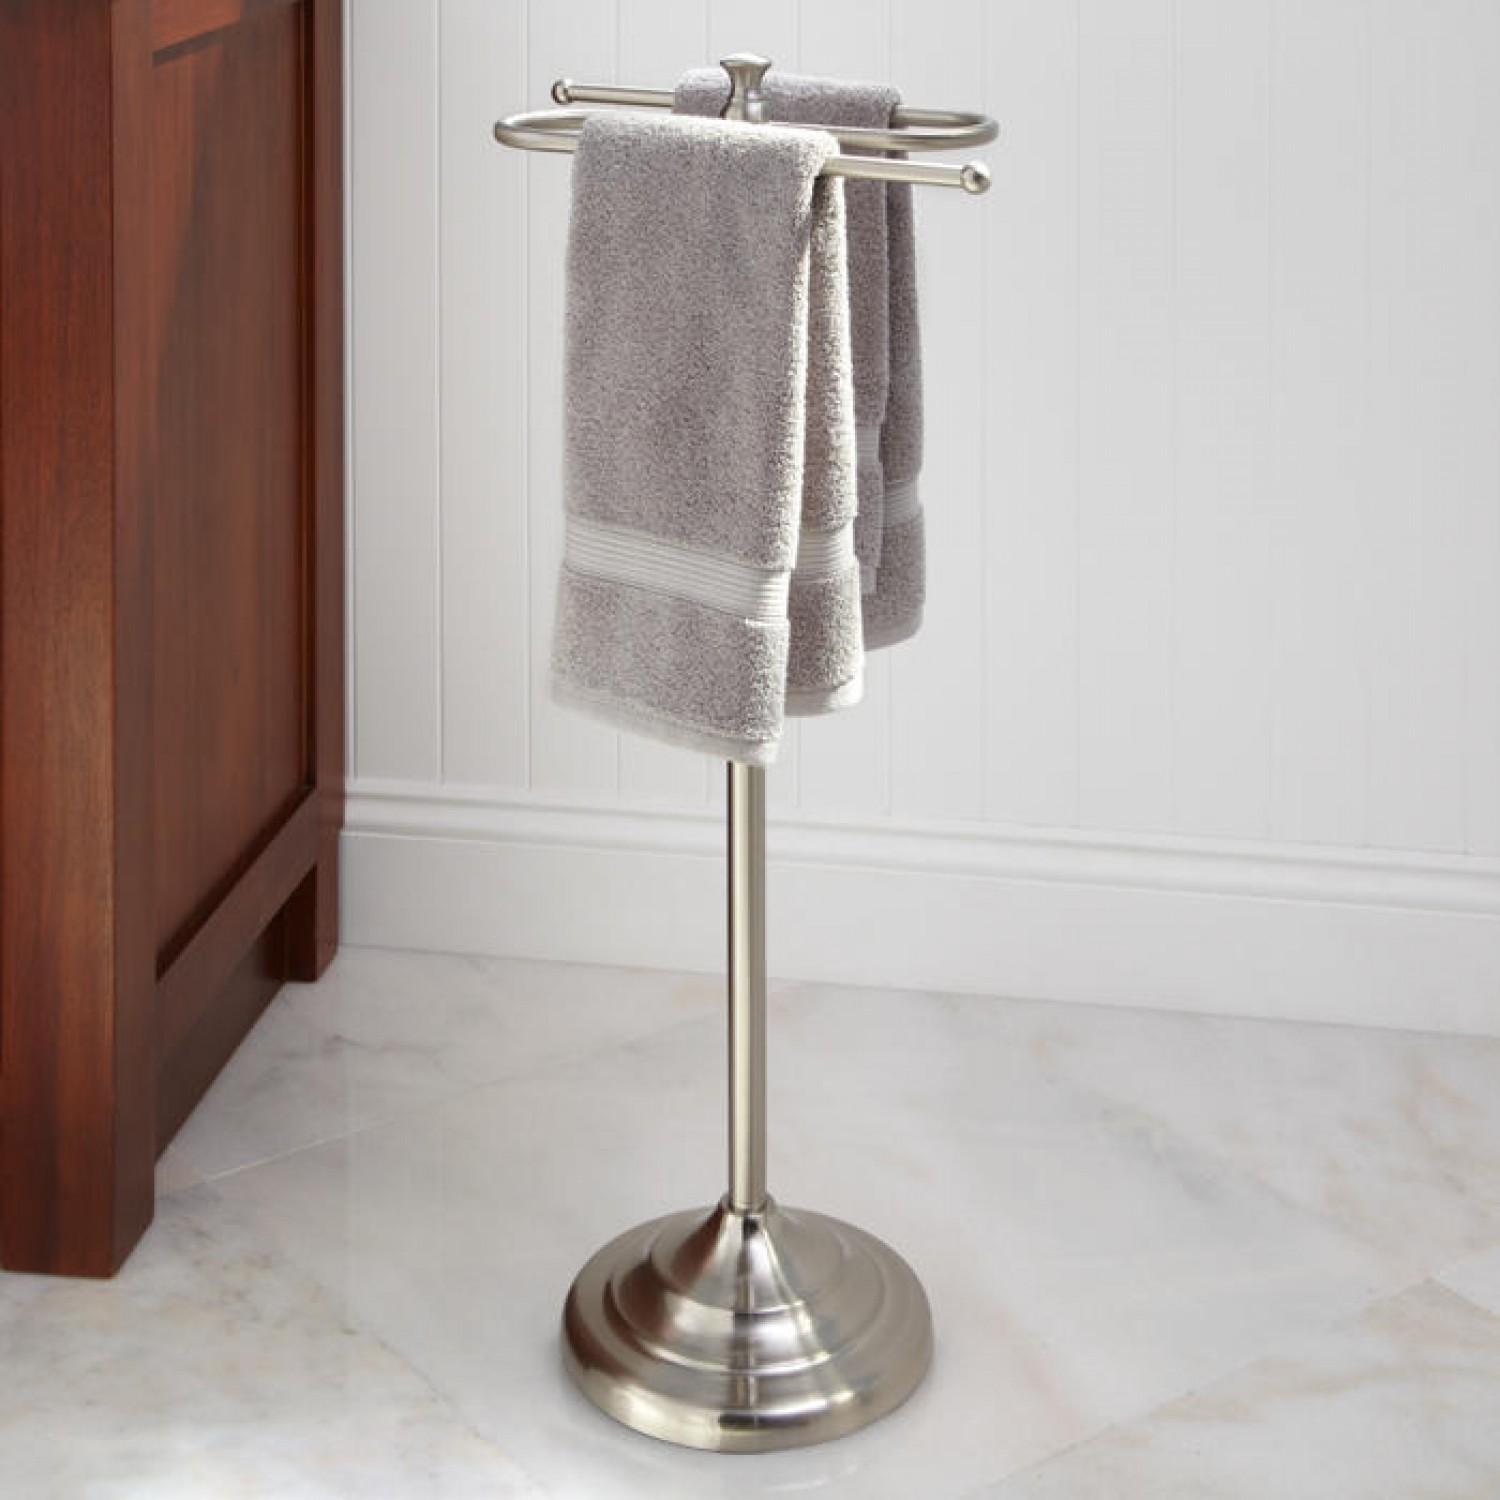 Picture of: free standing towel rack ideas